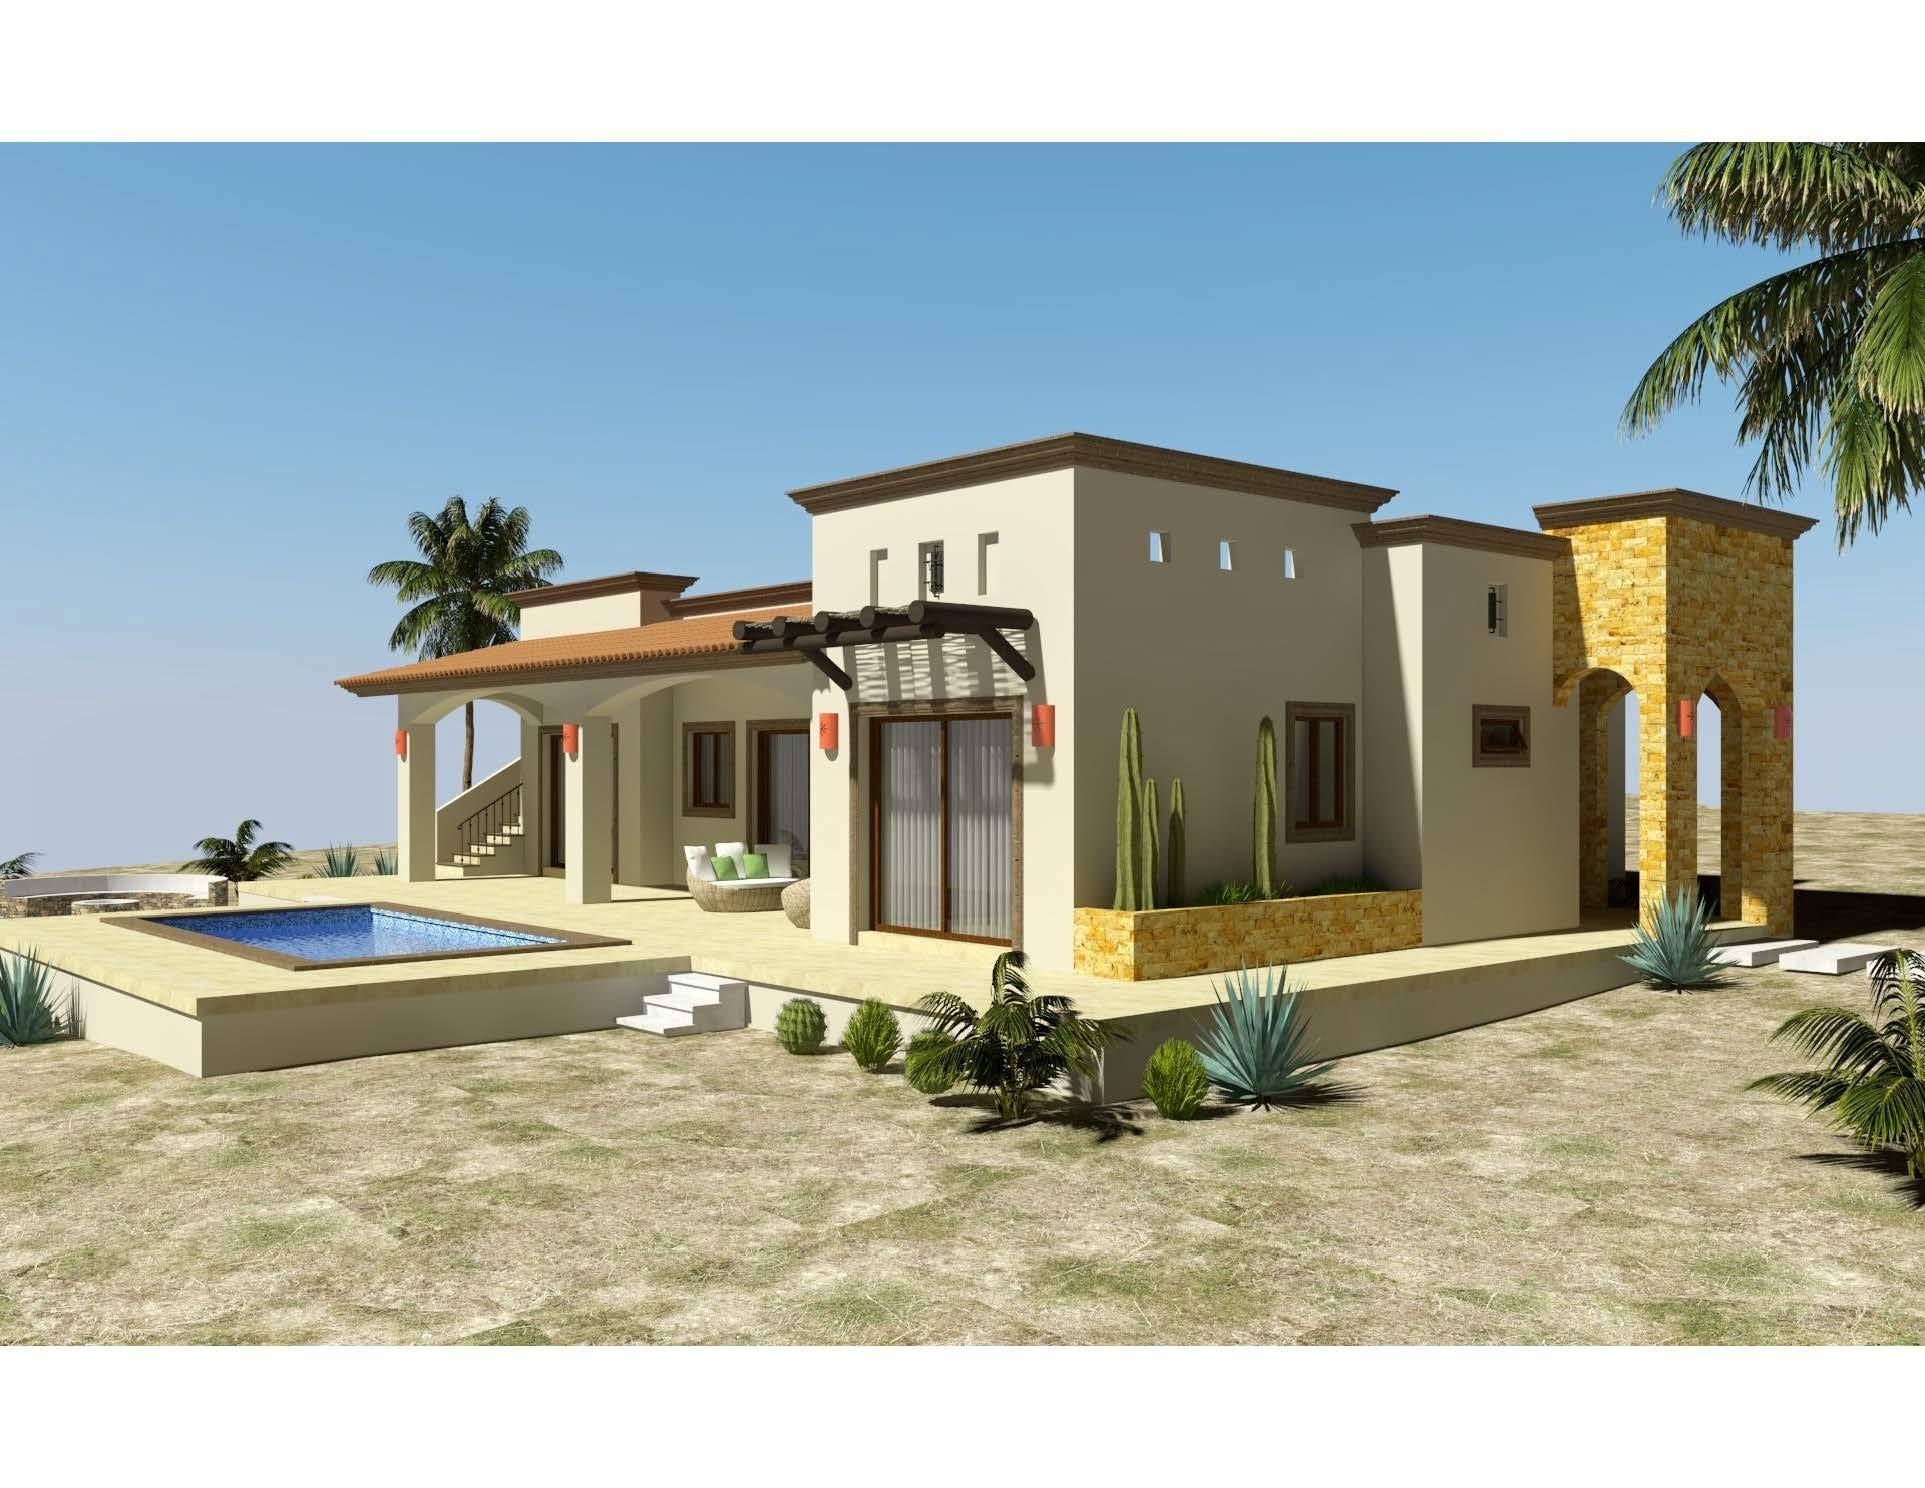 Casa Balandra is one of 6 models to be built in the new, master-planned community of Villas del Centenario, Casa Balandra is a 2BR/2BA home with 160m2/1,722ft2 of interior living space opening onto a large 60m2/650ft2 covered terrace with tiled roof. The soaring stone front entry welcomes visitors into an open living/kitchen/dining area featuring 10' ceilings and sliding glass doors that open onto the terrace. High-end finishes such as custom-built hardwood cabinetry, oversized tile, granite countertops and stainless appliances are included. The 2 master suites feature dual vanities in the bath, marble tiled shower and walk-in closets. Other features include a separate laundry room, as well as A/C units and ceiling fans in each room. Optional upgrades include pool or garage/casita options. The listing price includes the base home price plus a lot premium of $39,900. Lot premiums range from $39,900 - $79,900, so the final price of the home will vary based on the low selected. Also, some lots may require additional cost for retaining walls. The base price of the home includes all interior and exterior covered areas but extra terrace area is an upgrade. price does not include other options or upgrades.  Villas del Centenario is a private, gated community of homes located in the hills of El Centenario overlooking the Sea of Cortez with stunning ocean views. Now taking lot reservations with 50% deposit towards the lot premium.  The first homes to be built are expected to break ground in Fall 2021 (Phase I and II only), with completion averaging 9 months later. Please consult the listing agency for the full lot price list.